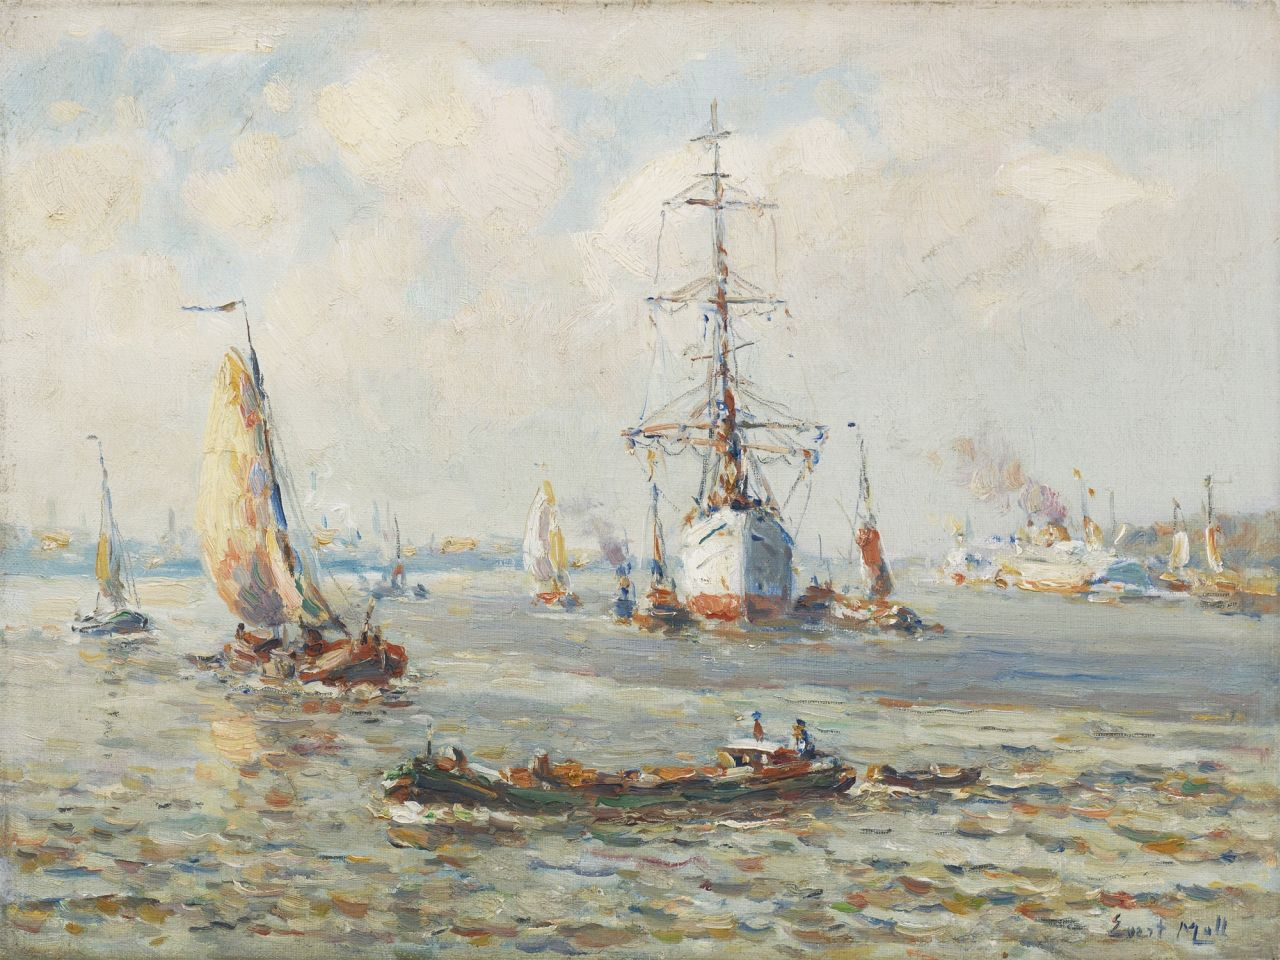 Moll E.  | Evert Moll, A three-master on the Nieuwe Maas near Rotterdam, oil on canvas 30.1 x 40.2 cm, signed l.r.